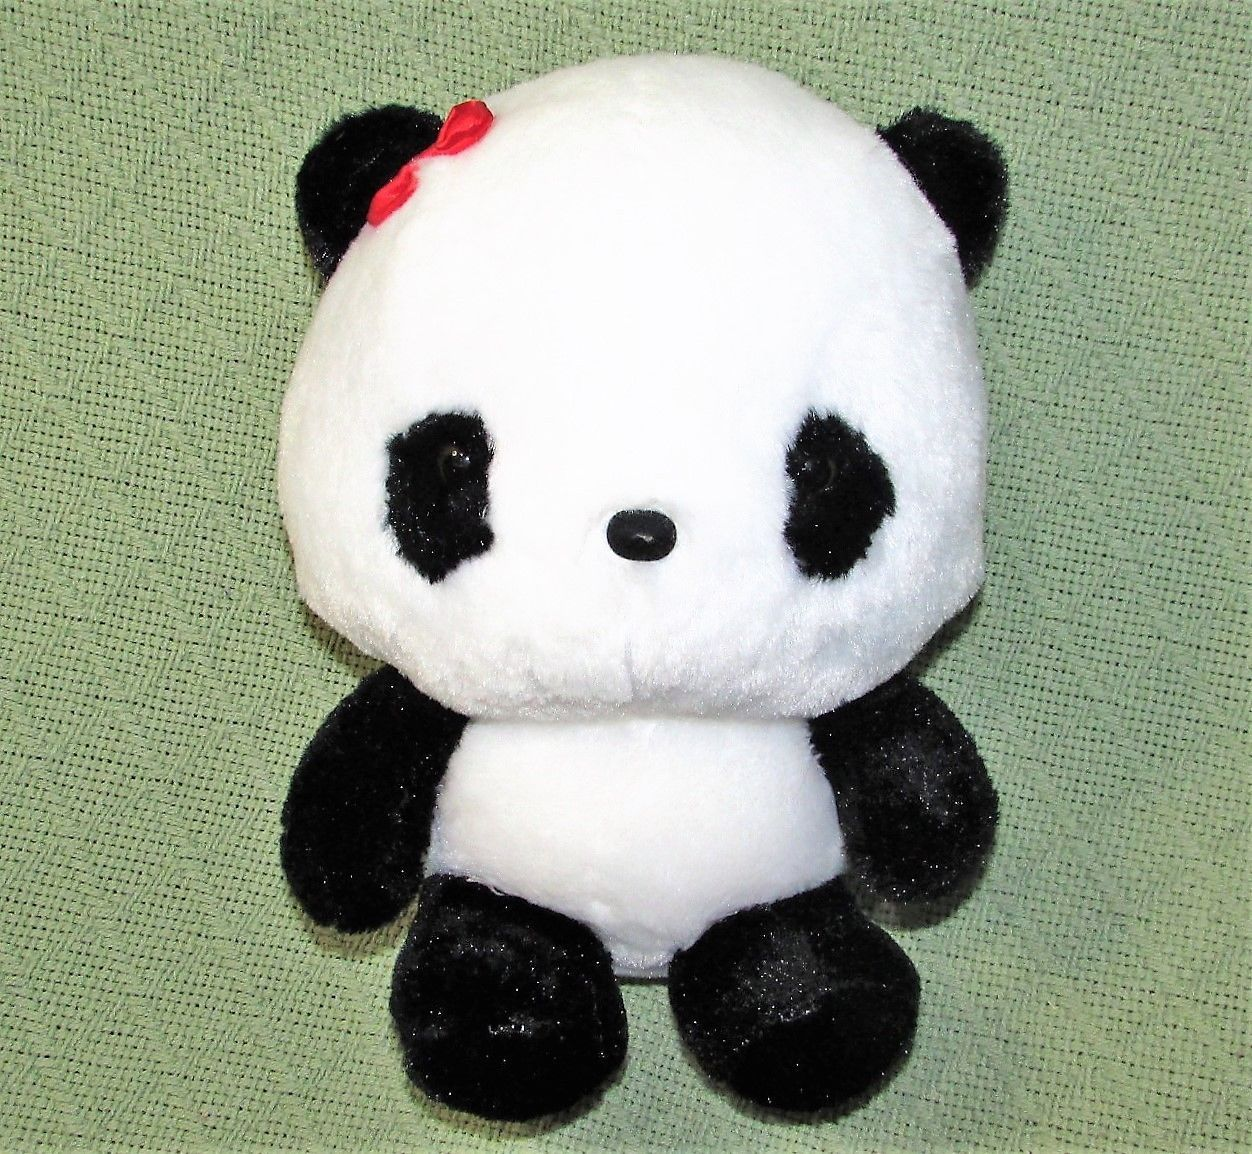 "ANIME PANDA Plush Japanese Stuffed Animal DOll Toy Black White RED BOW 9"" Baby"